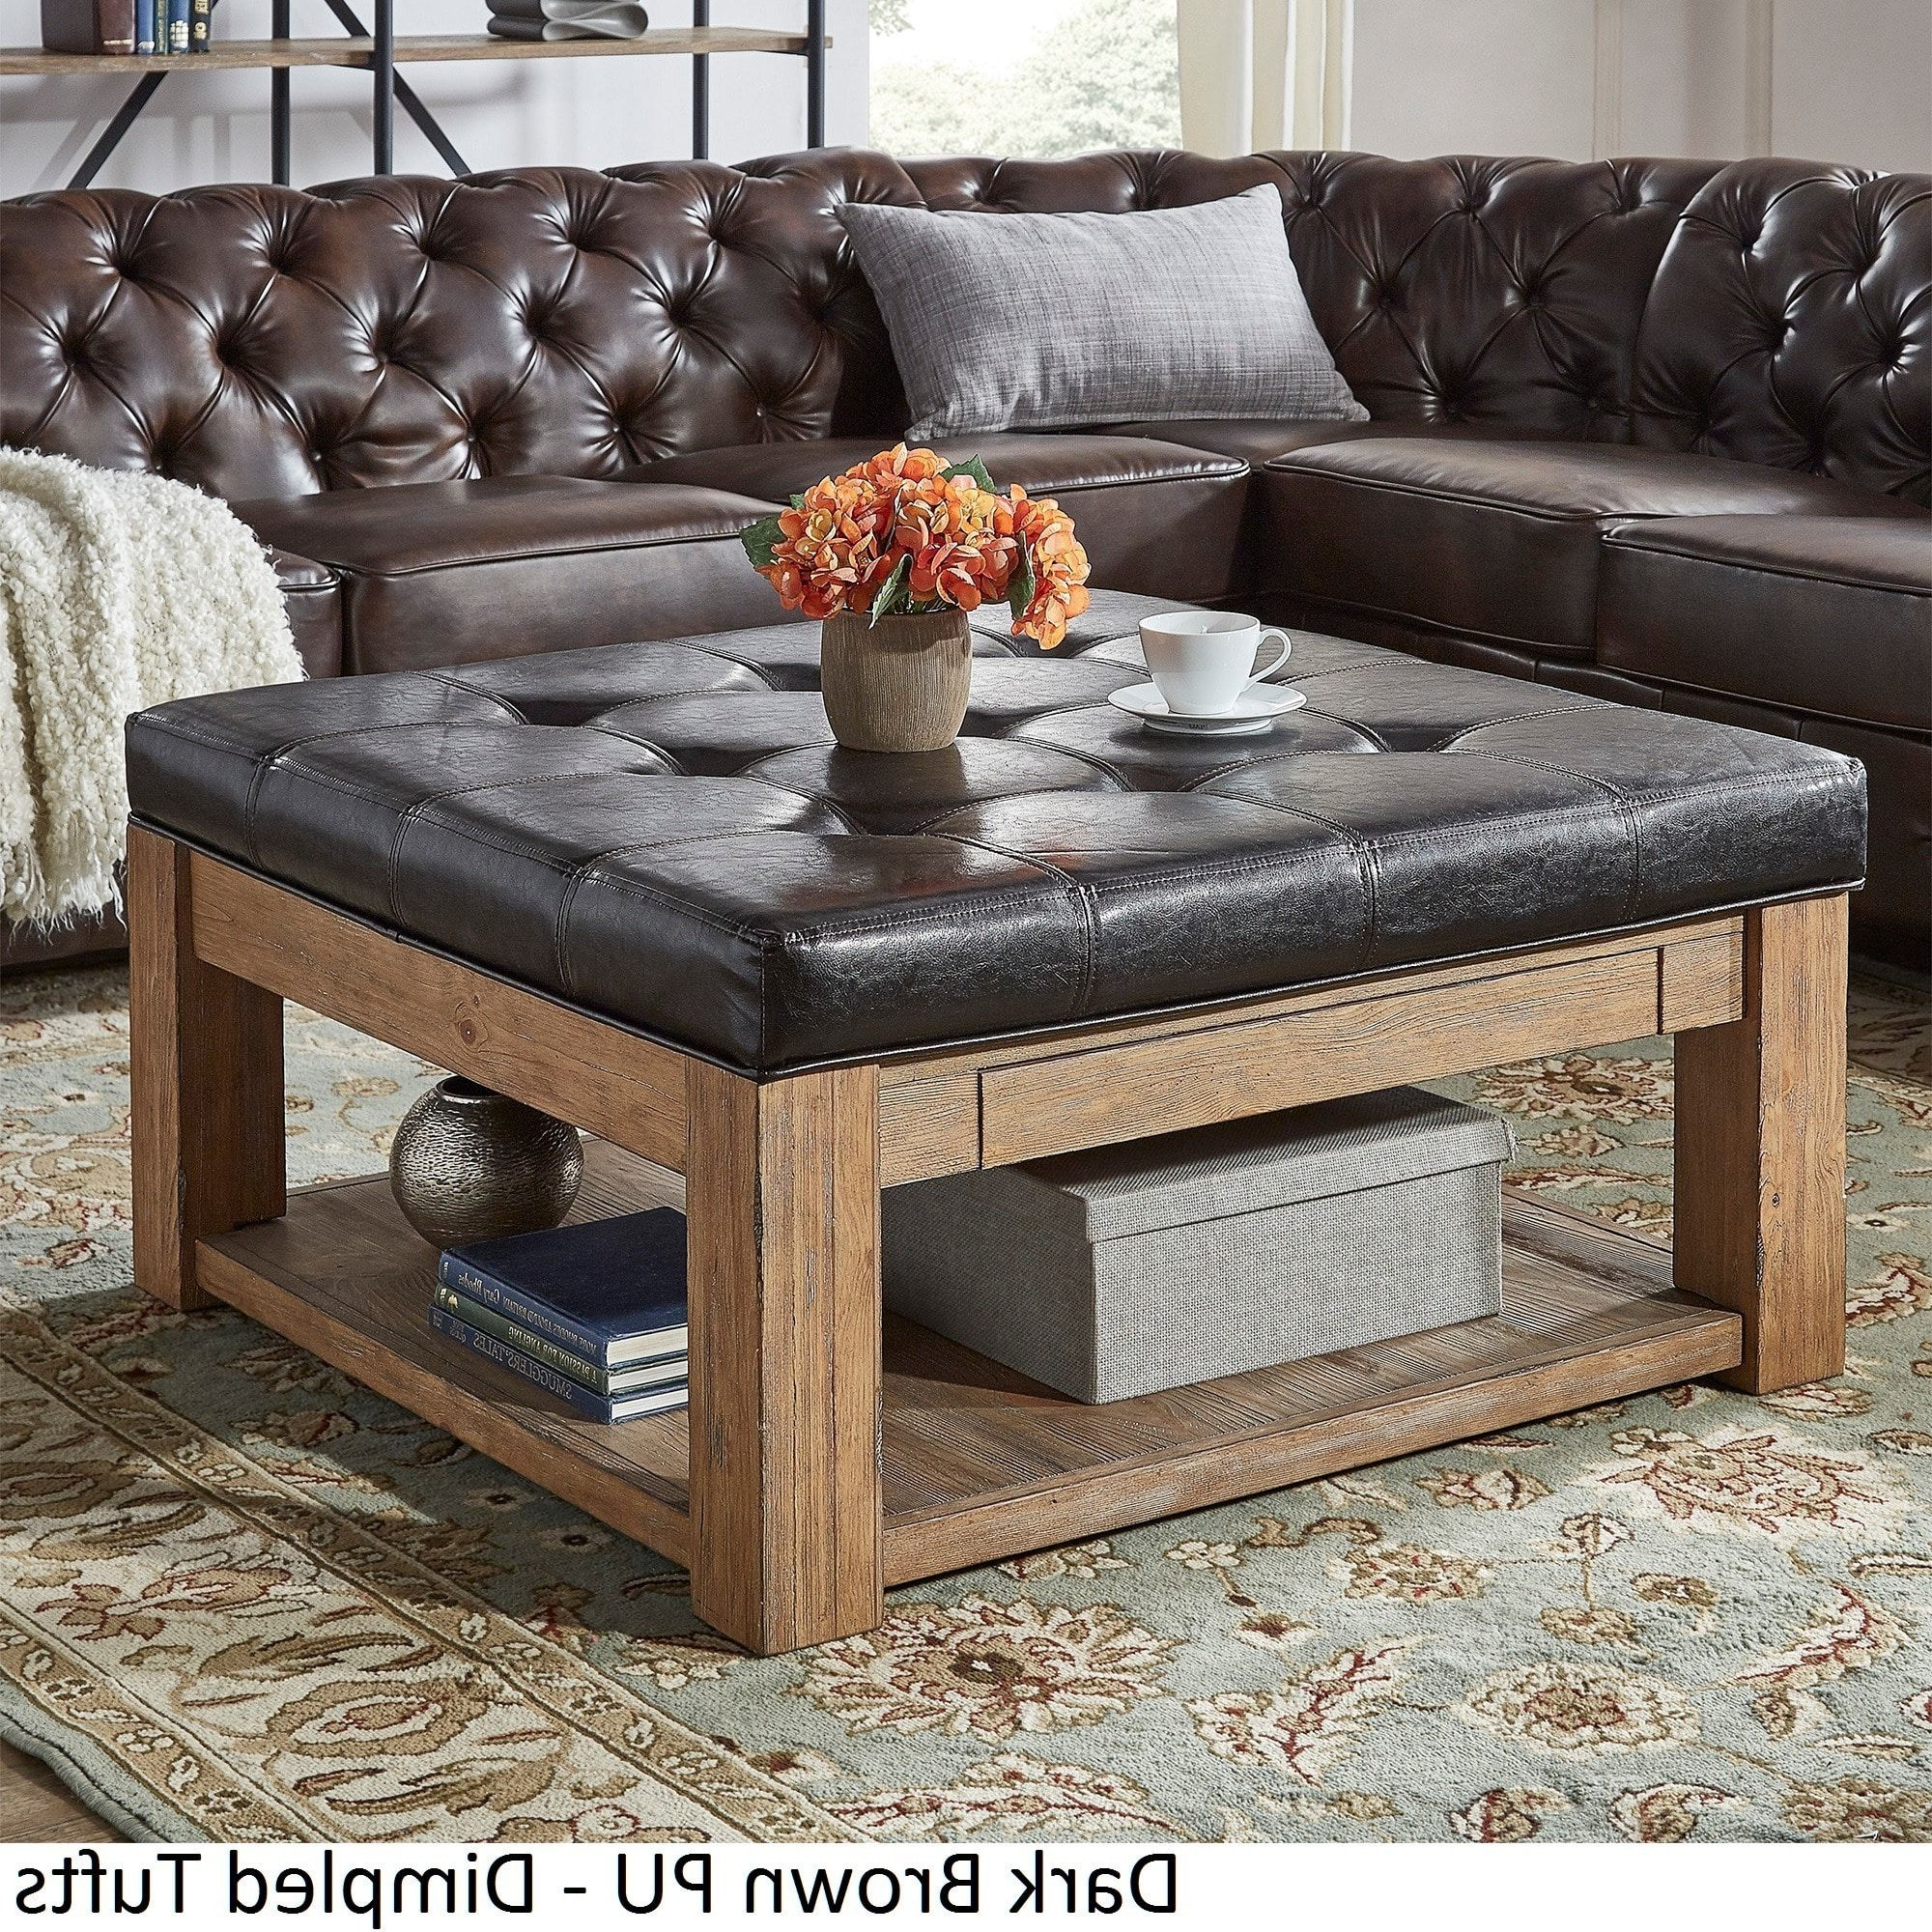 Most Popular Lennon Pine Square Storage Ottoman Coffee Tables Throughout Lennon Pine Square Storage Ottoman Coffee Tableinspire Q (View 12 of 20)